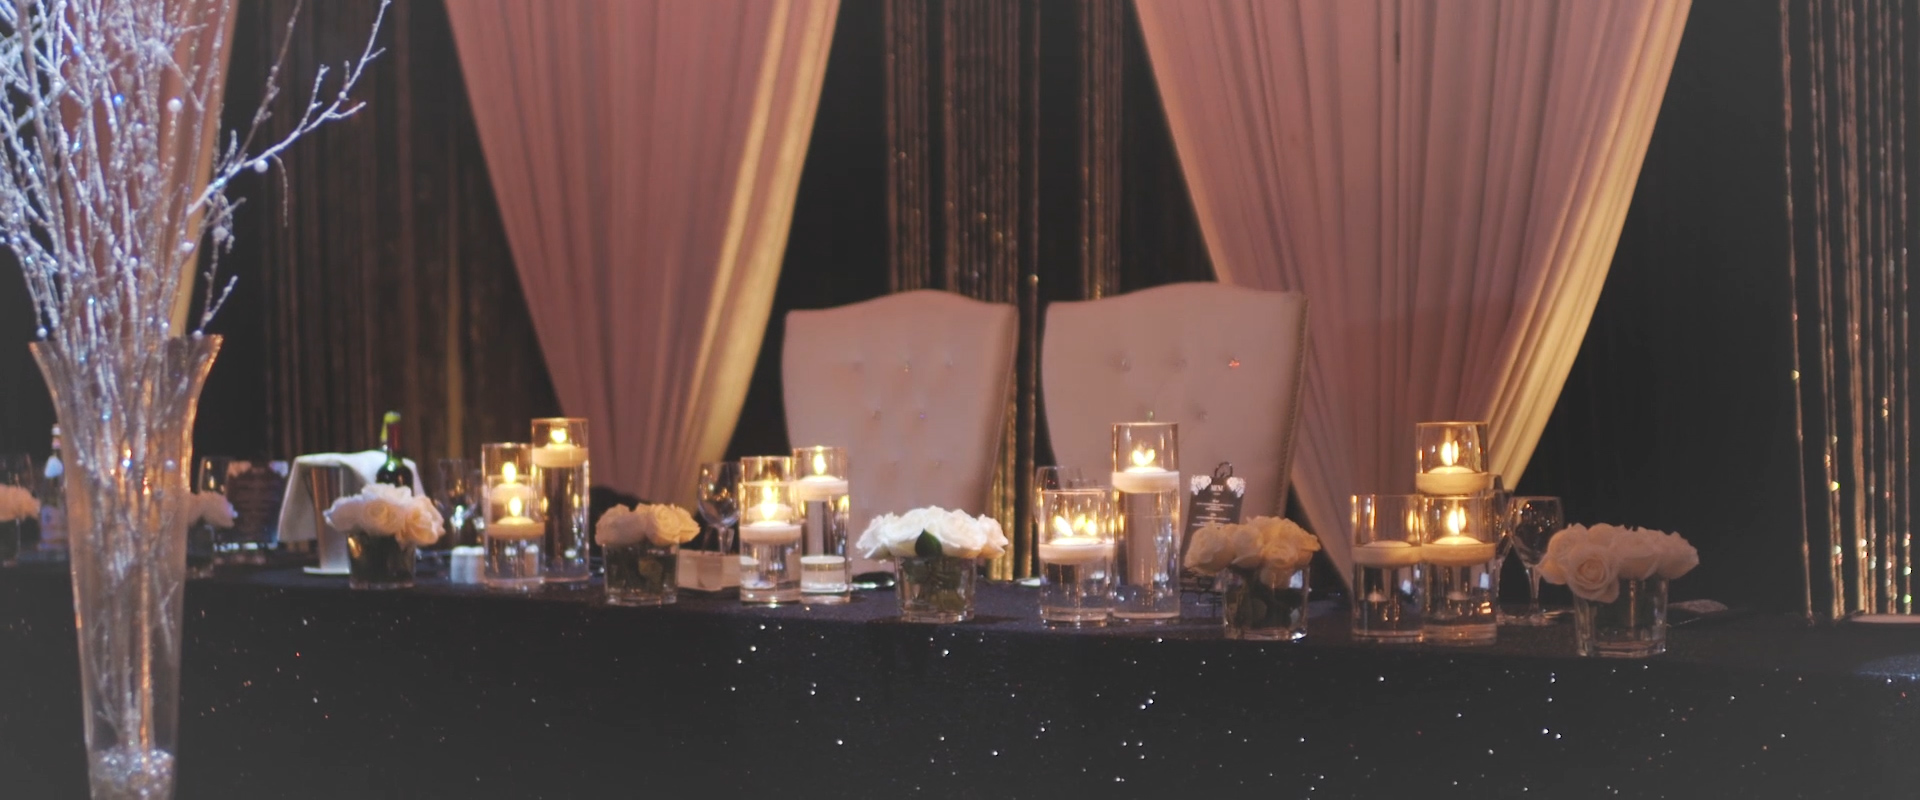 An image of table decor at a wedding reception hall; taken from a Toronto Wedding Video